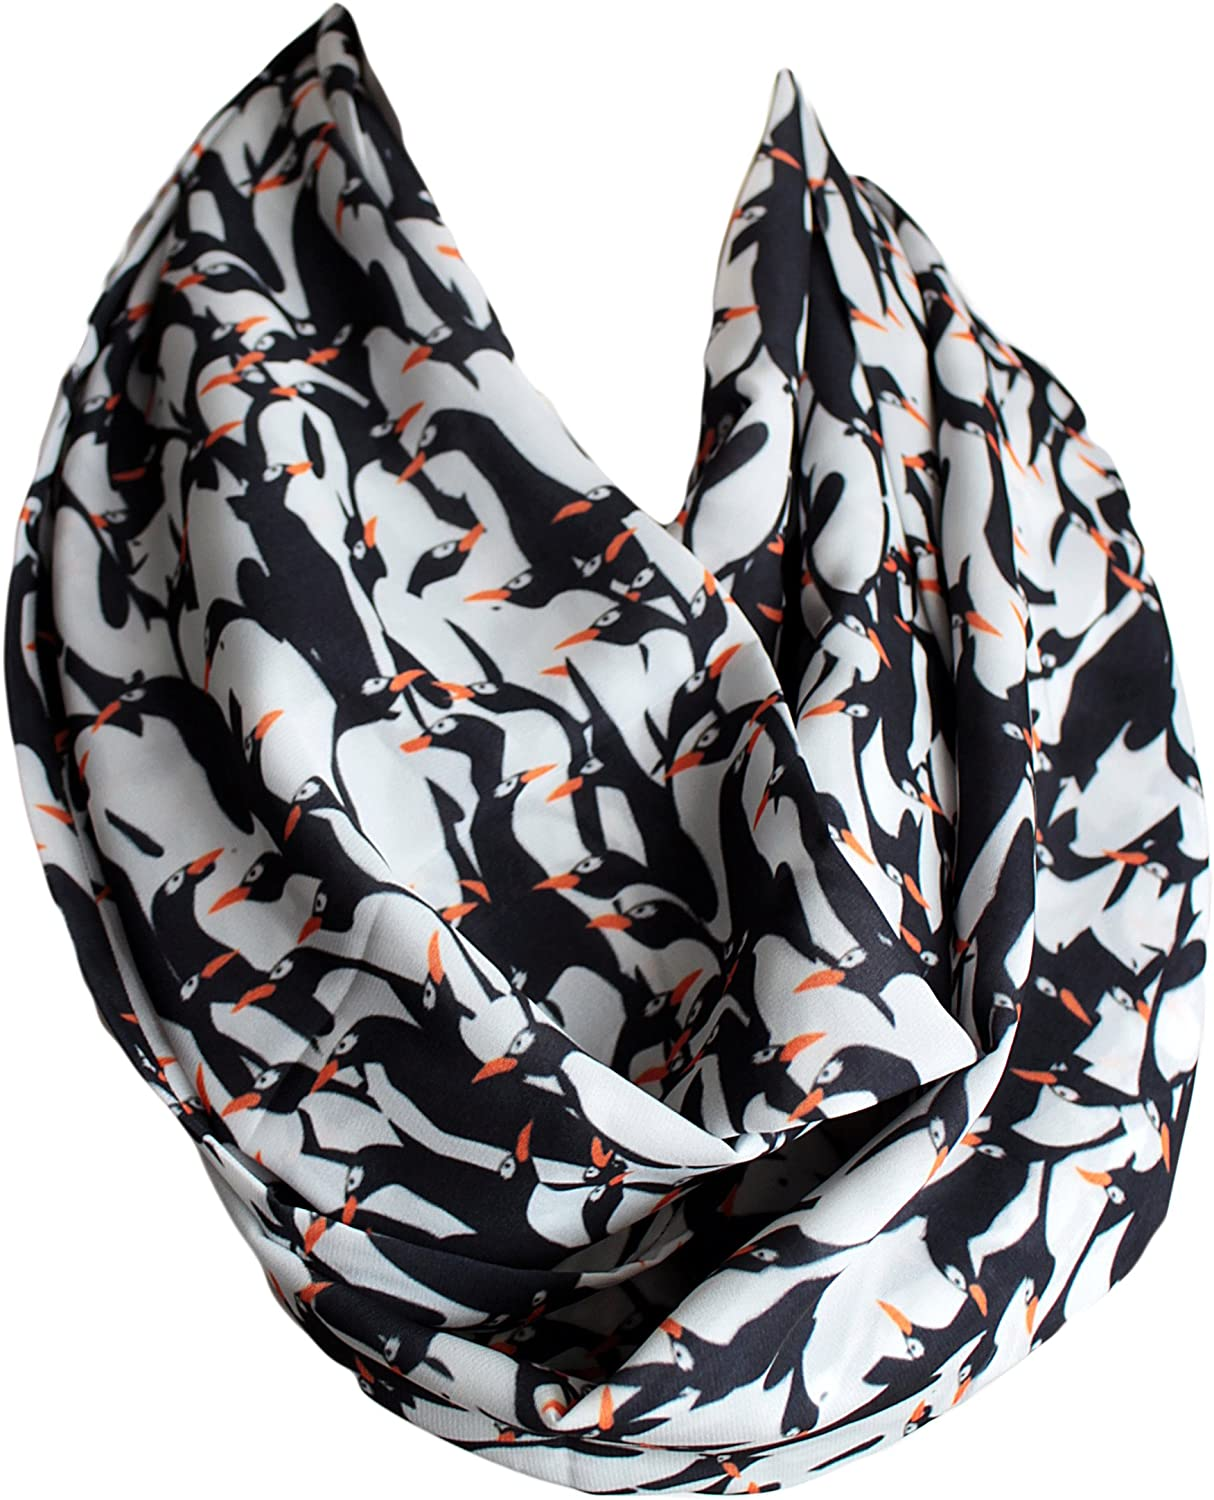 Etwoa's King Penguins Print Infinity Scarf Circle Loop Scarf